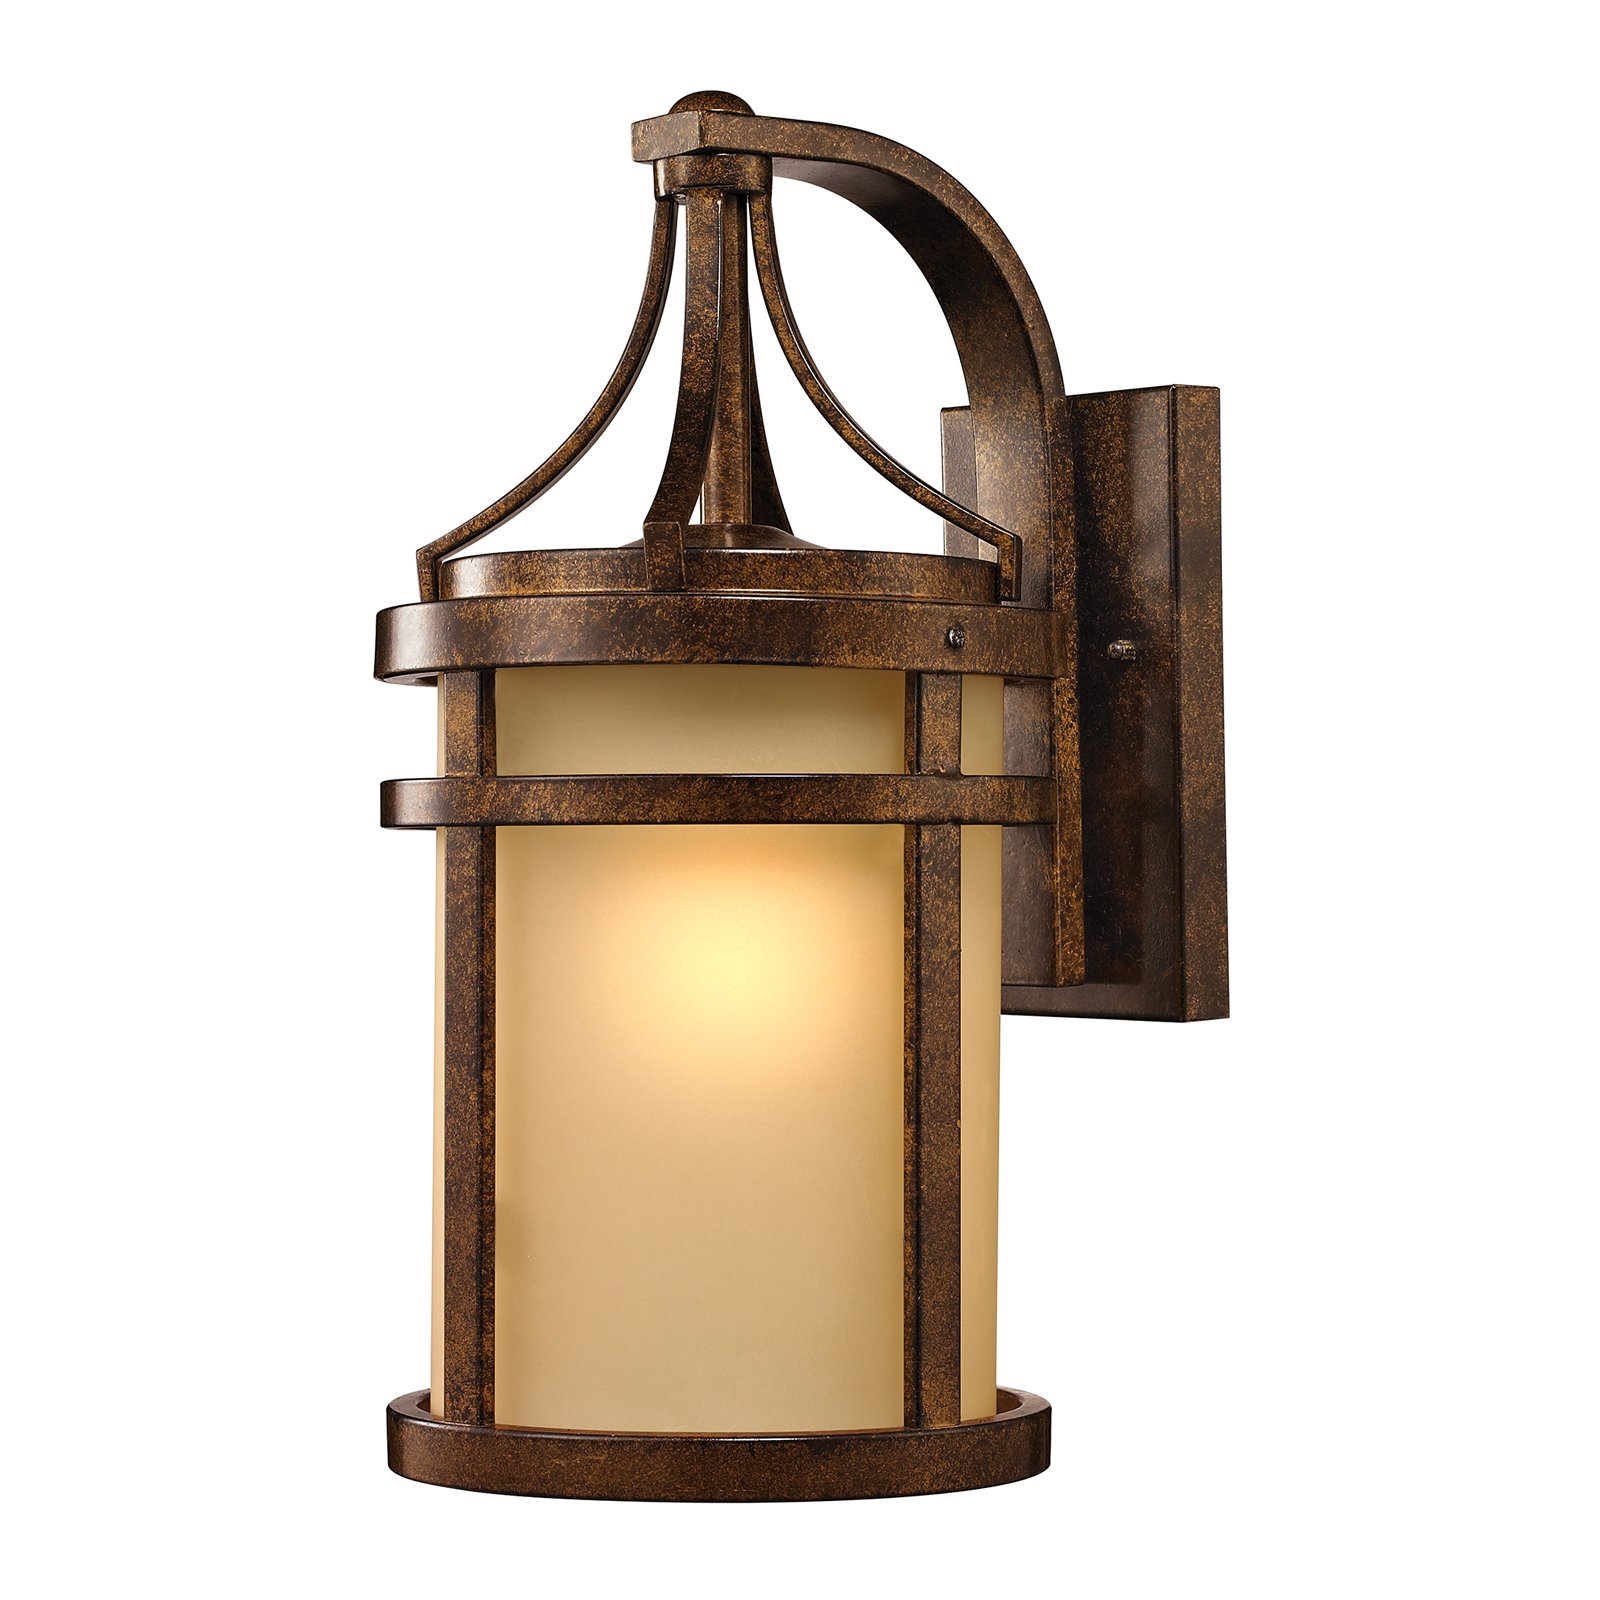 ELK Lighting Winona 4509 1-Light Outdoor Wall Sconce